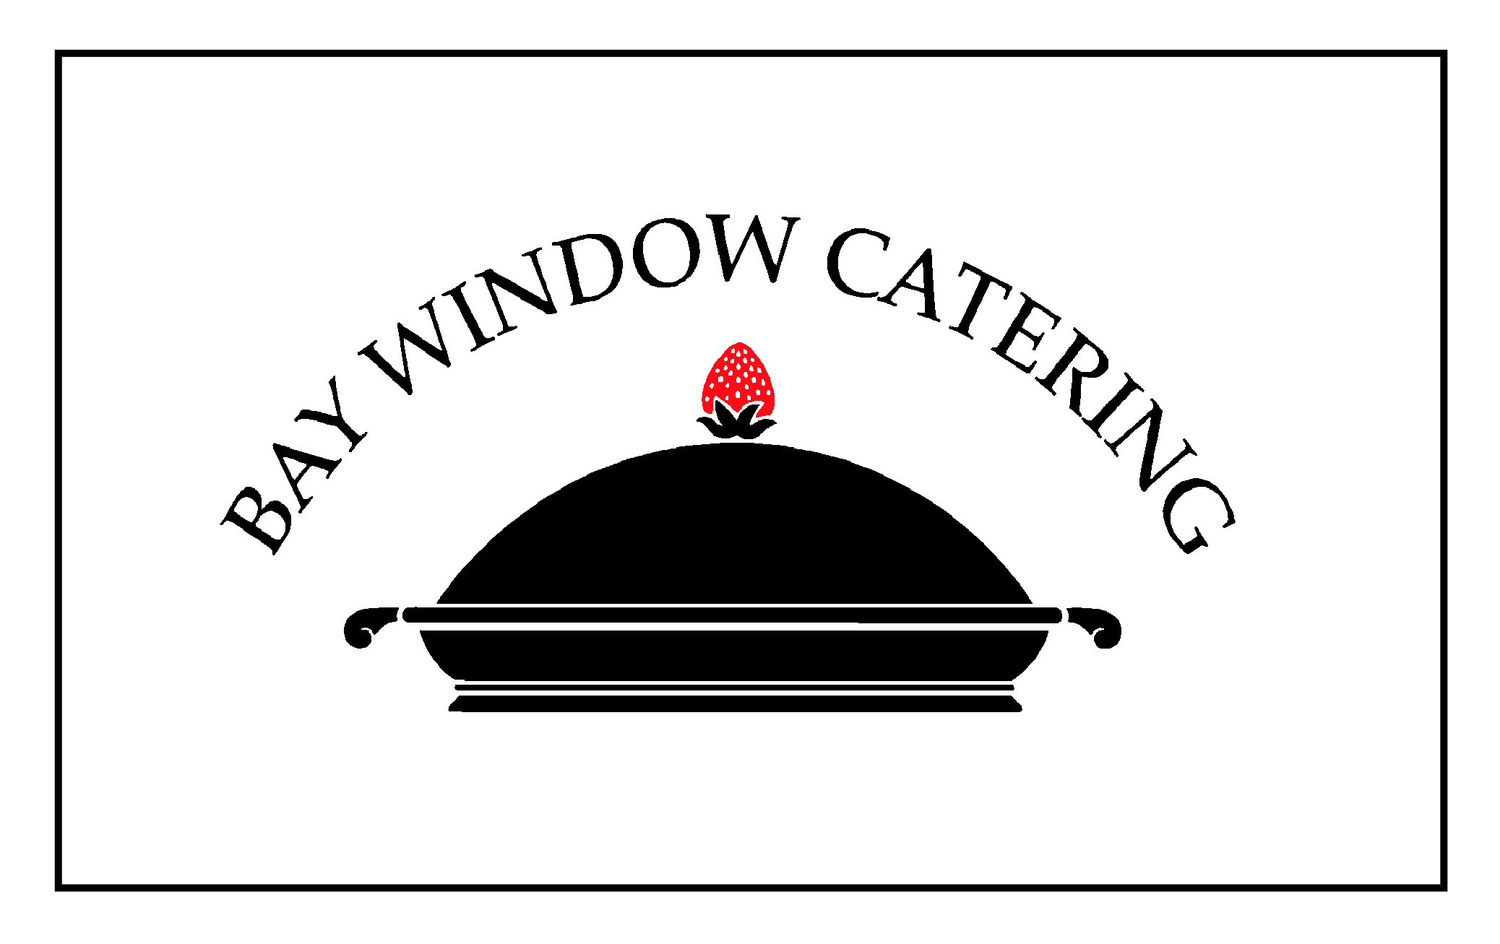 BAY WINDOW CATERING